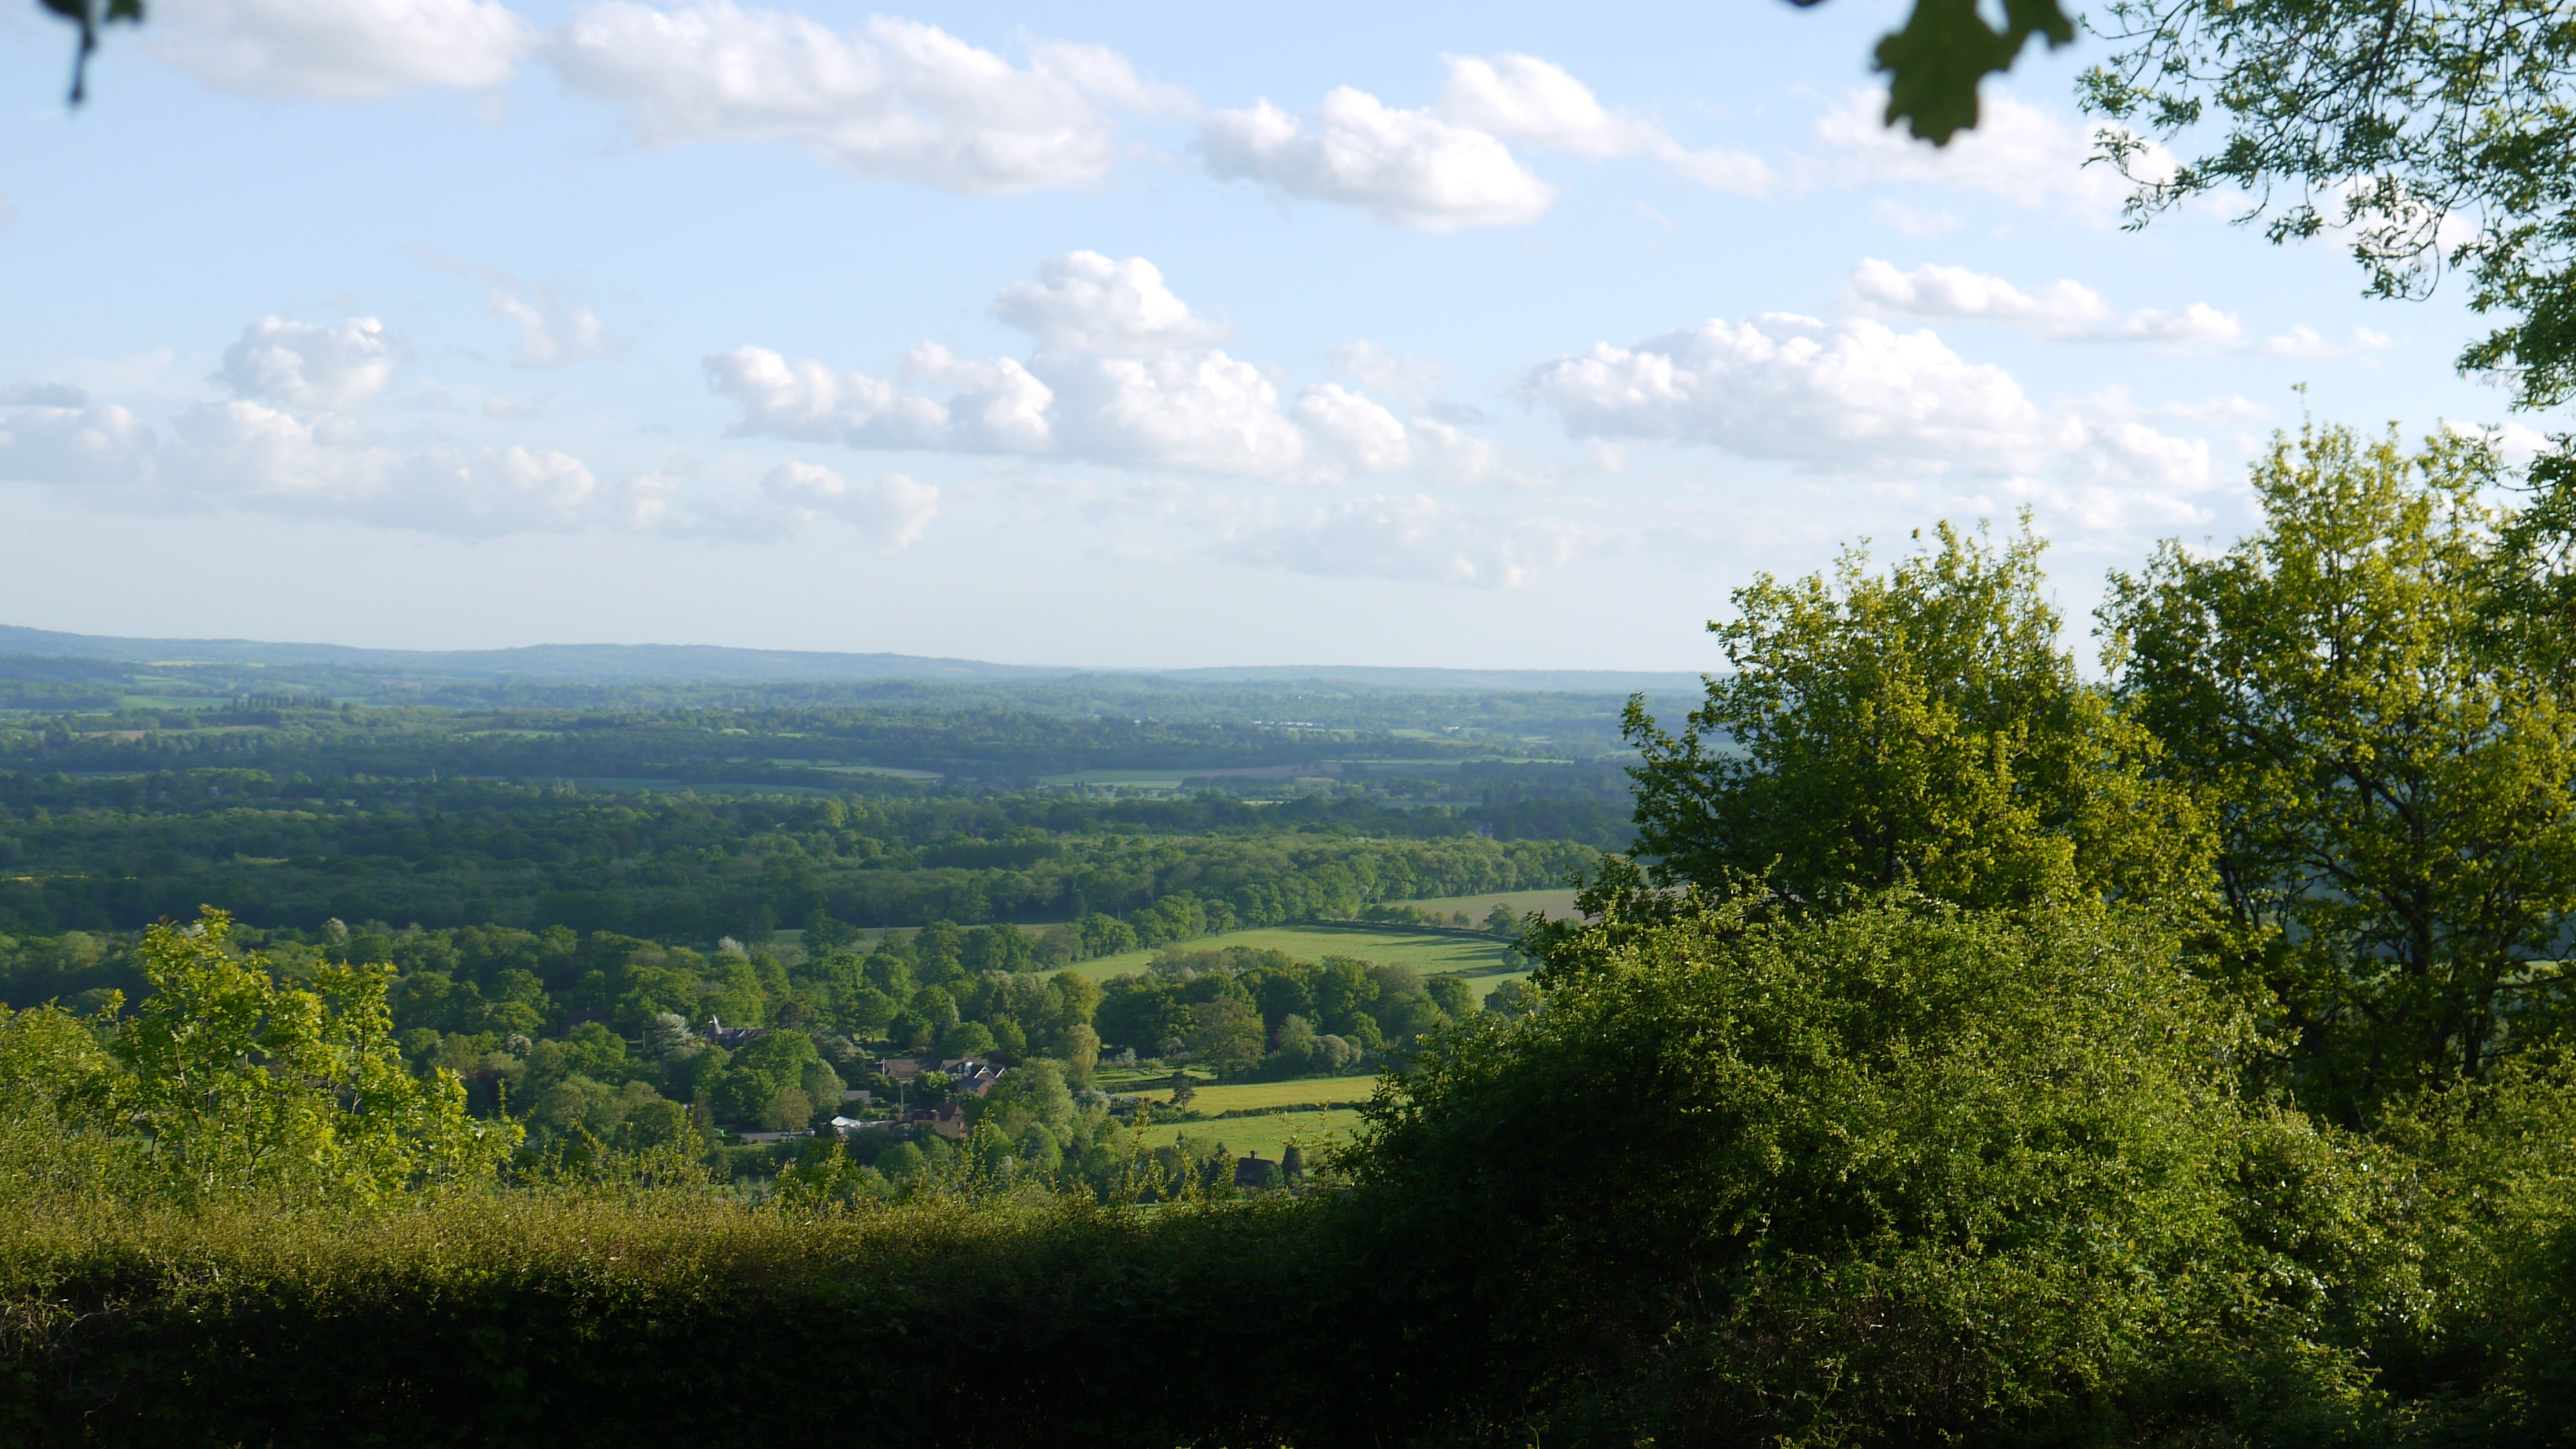 View from the top of One Tree Hill across the countryside